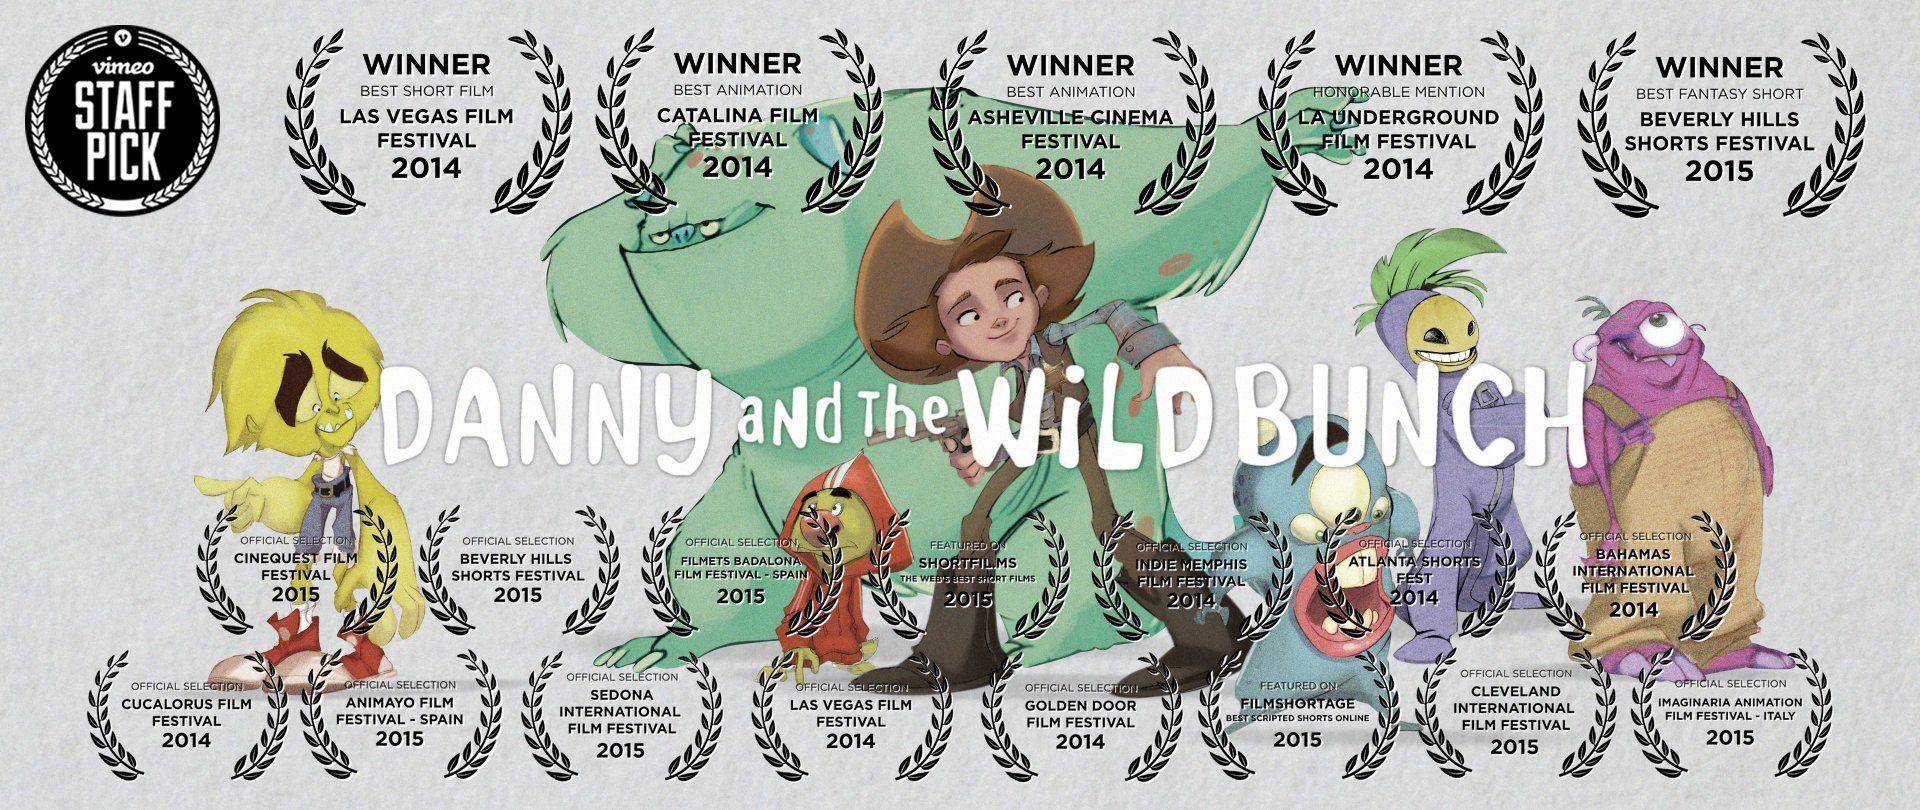 """Danny and the Wild Bunch (04:30) Directed by Robert Rugan A children's book author is told that her new manuscript needs to be """"darker"""", but when her revisions piss off the characters in the book, they come back to make some changes of their own"""